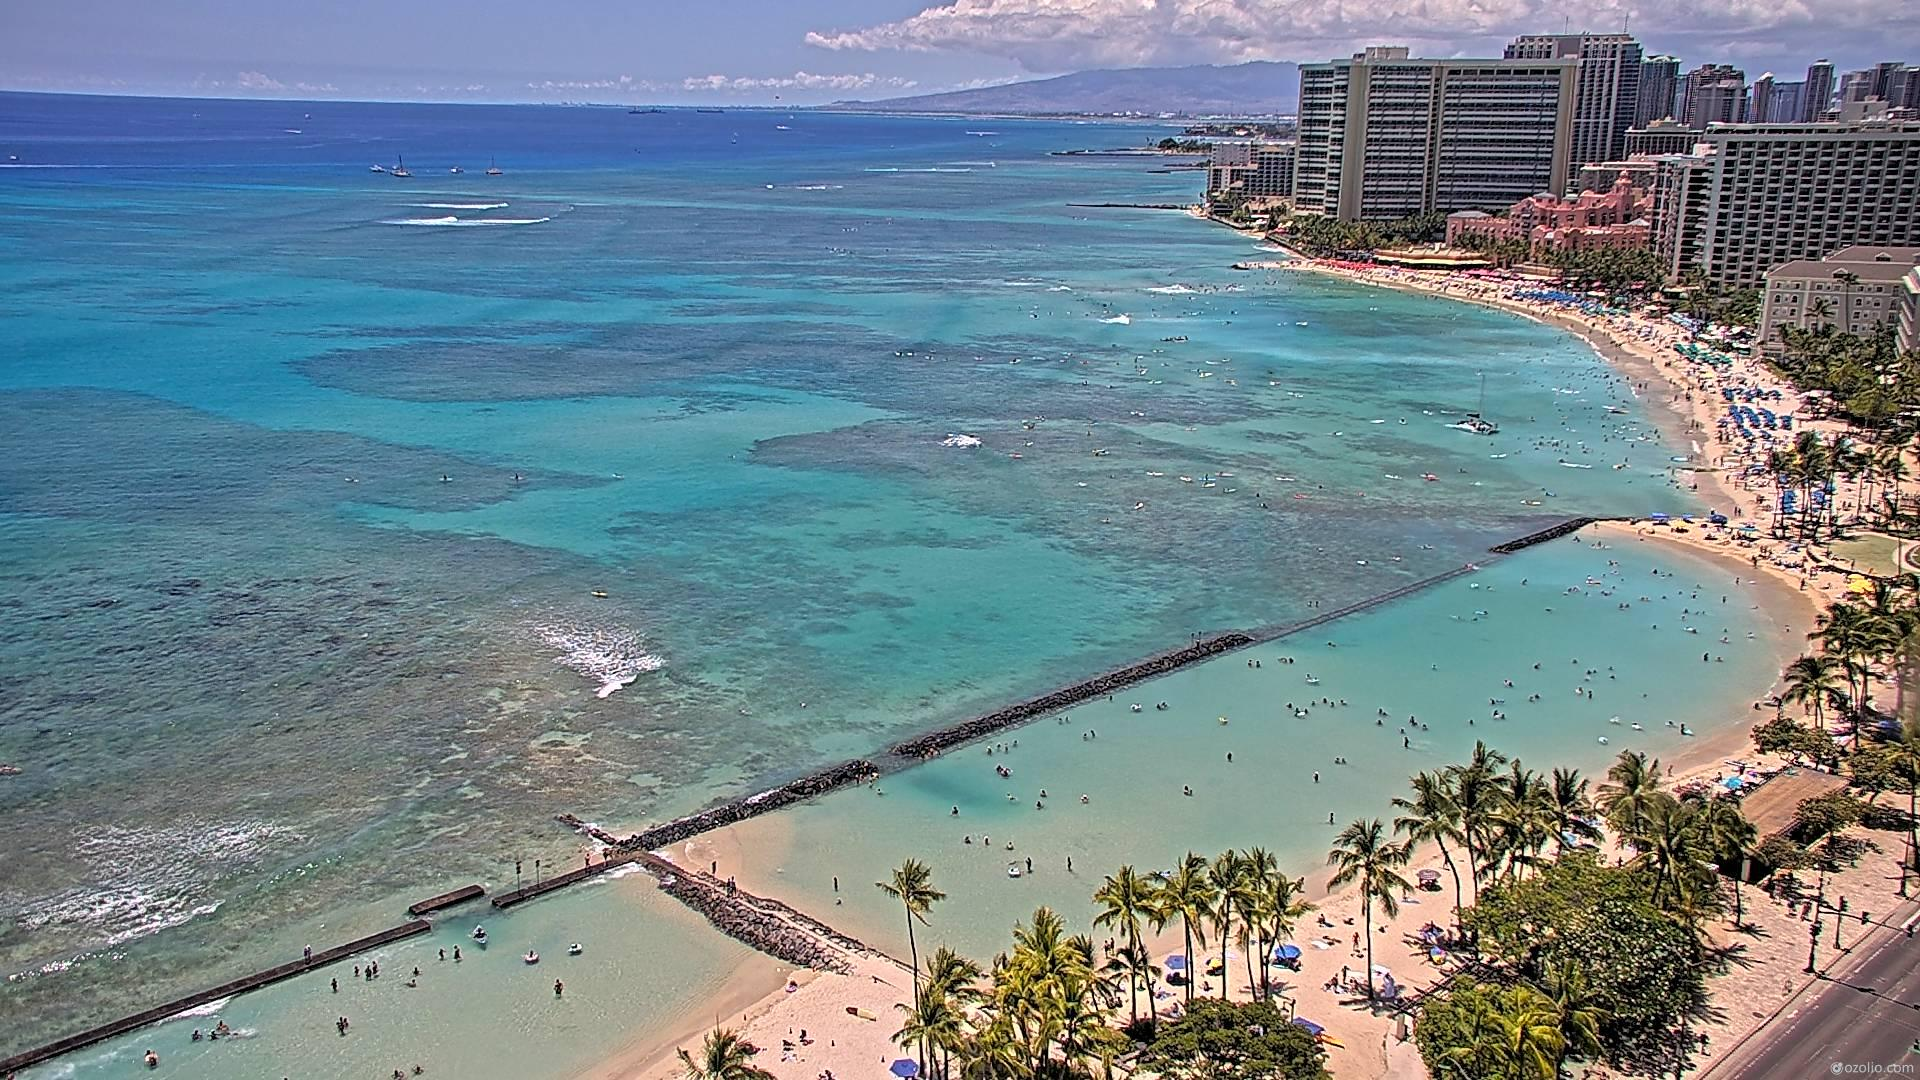 Waikiki Beach, Hawaii Fri. 13:16